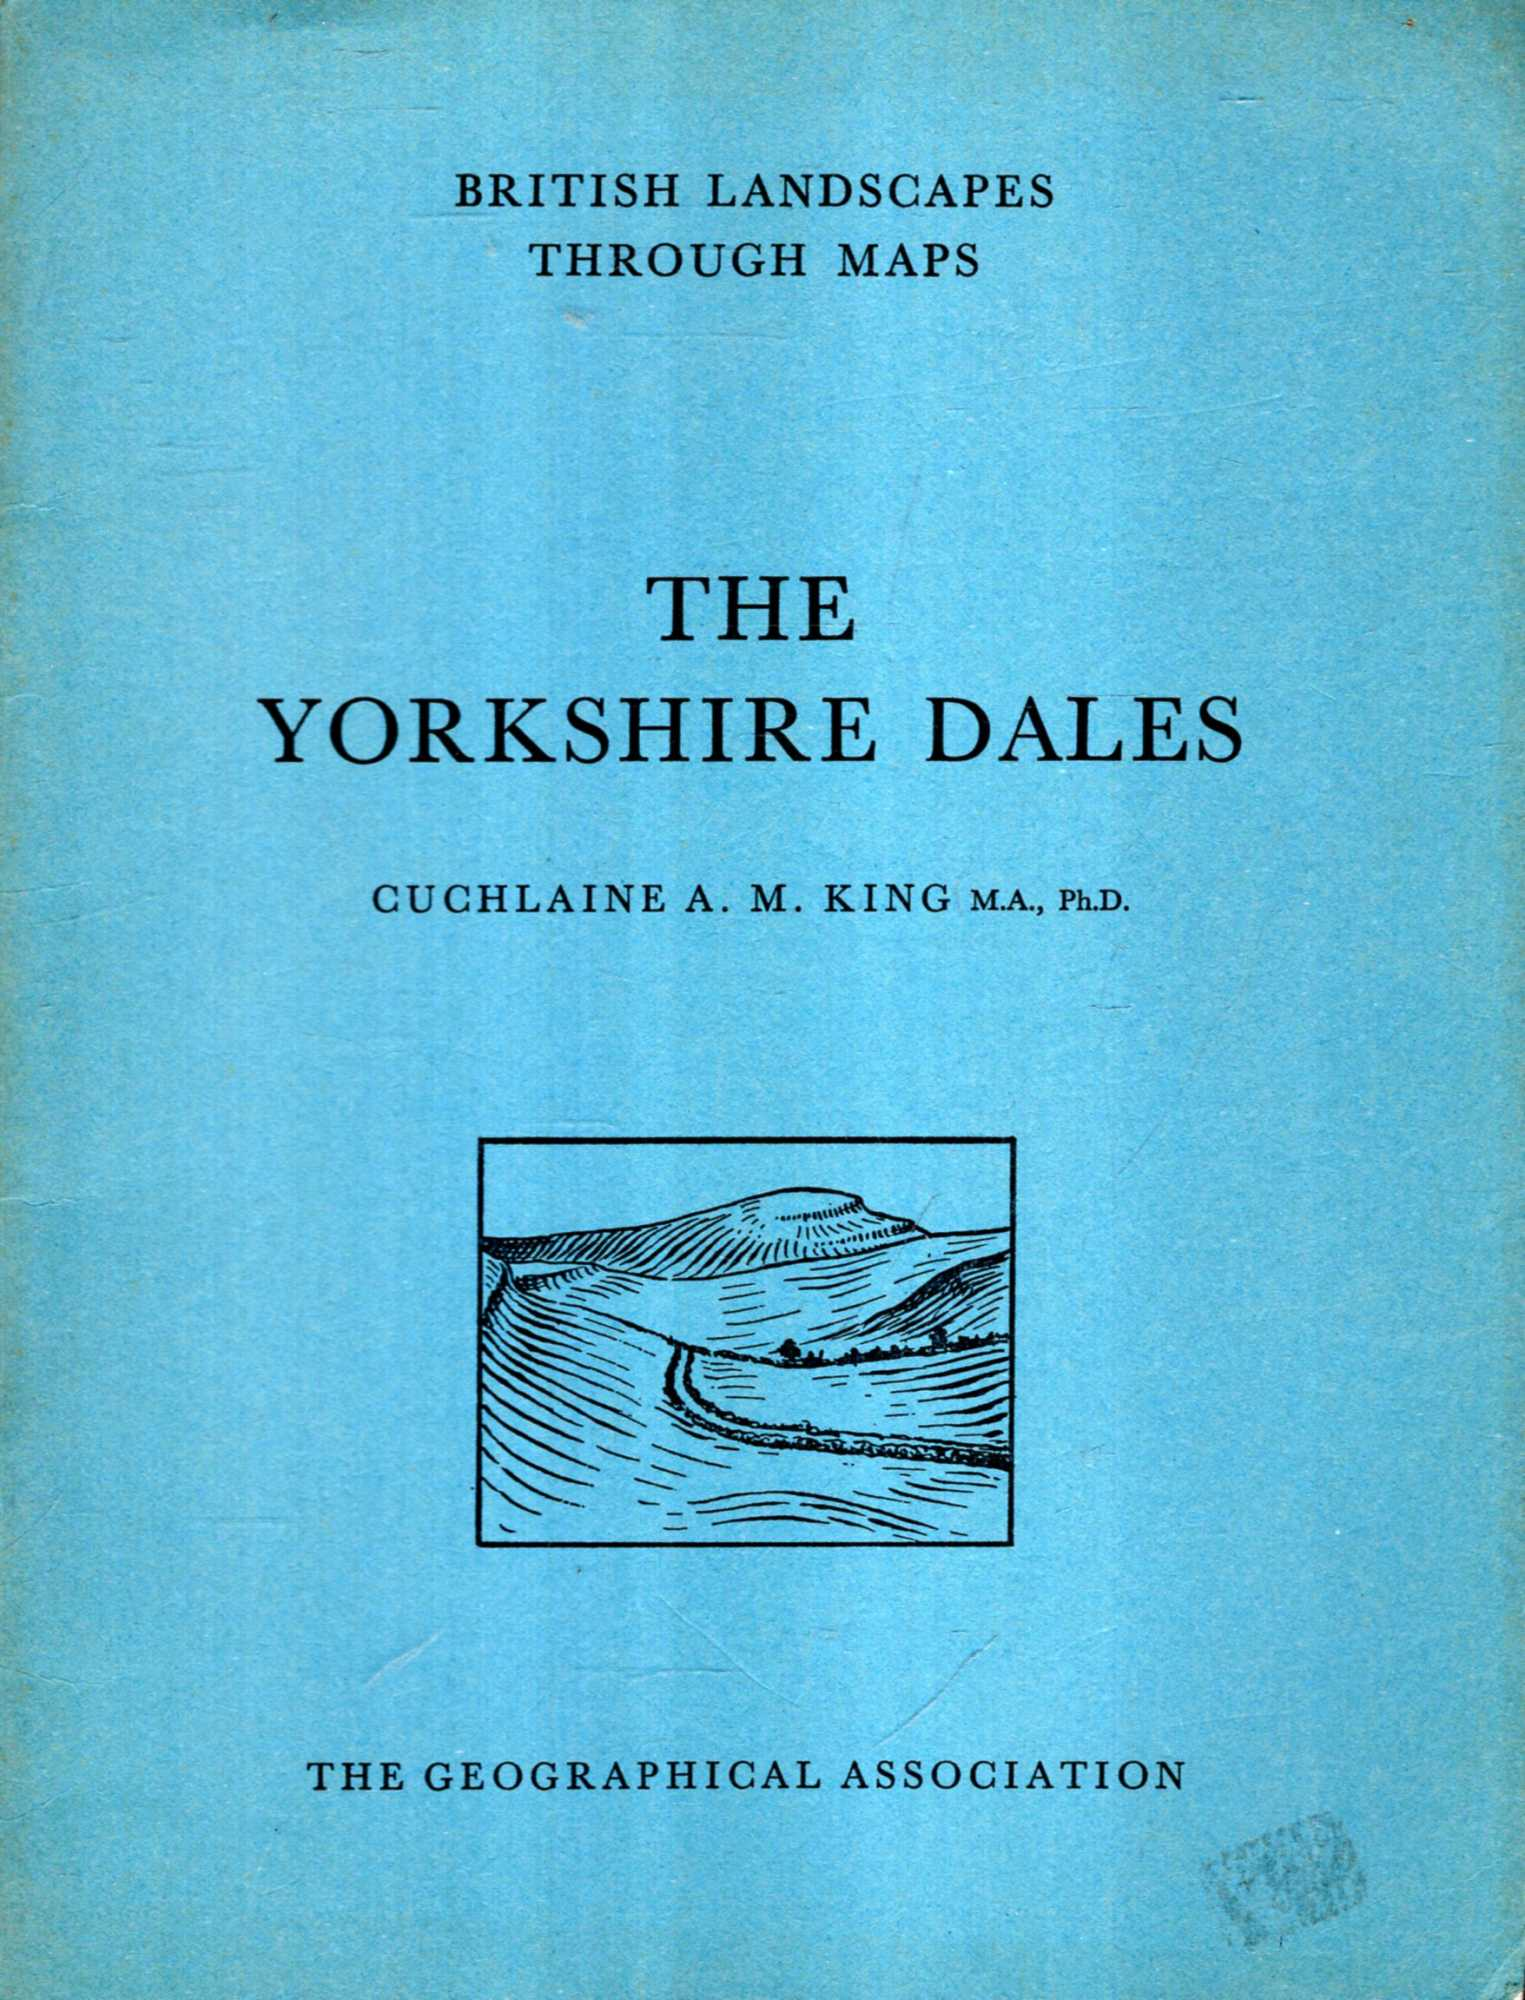 Image for British Landscapes Through Maps 2 : The Yorkshire Dales, a description of the O.S. One-inch Sheet 90 : Wensleydale